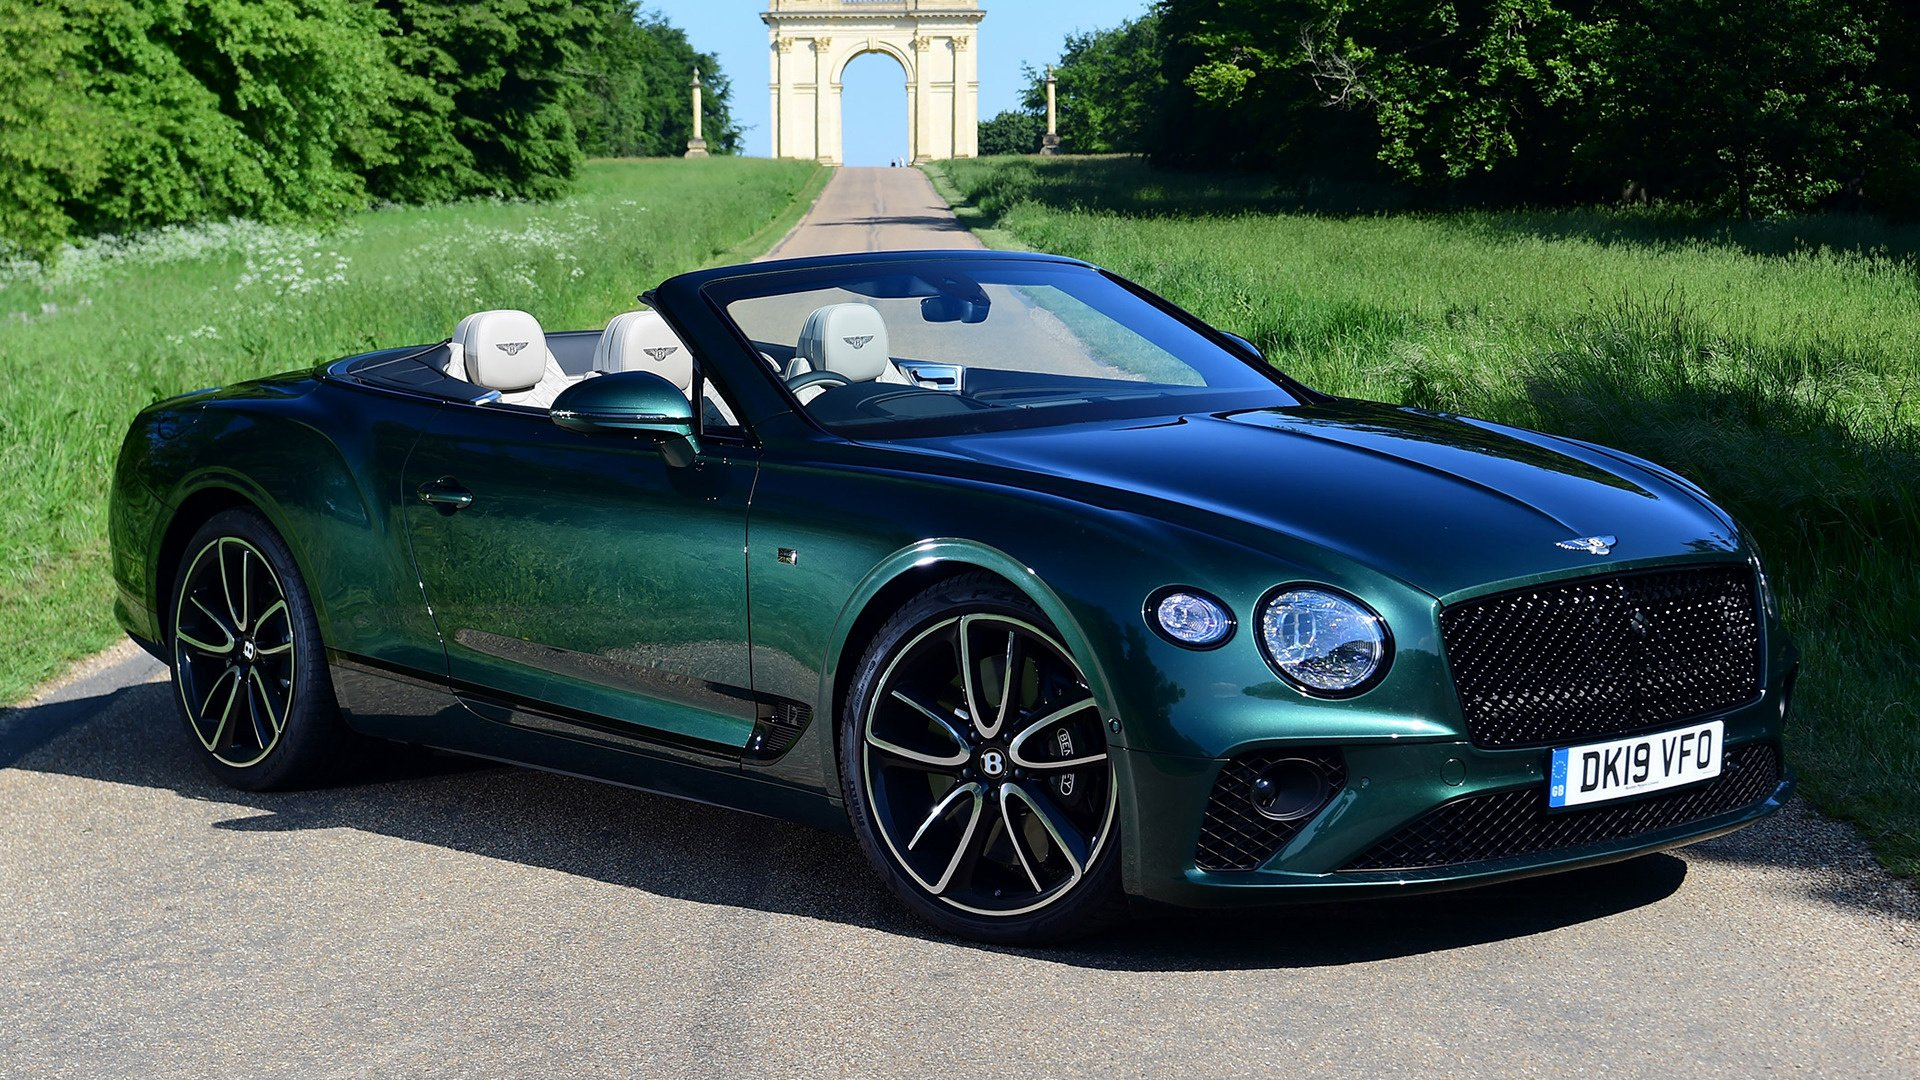 2019 Bentley Continental Gt Convertible Hd Wallpaper Background Image 1920x1080 Id 1069525 Wallpaper Abyss